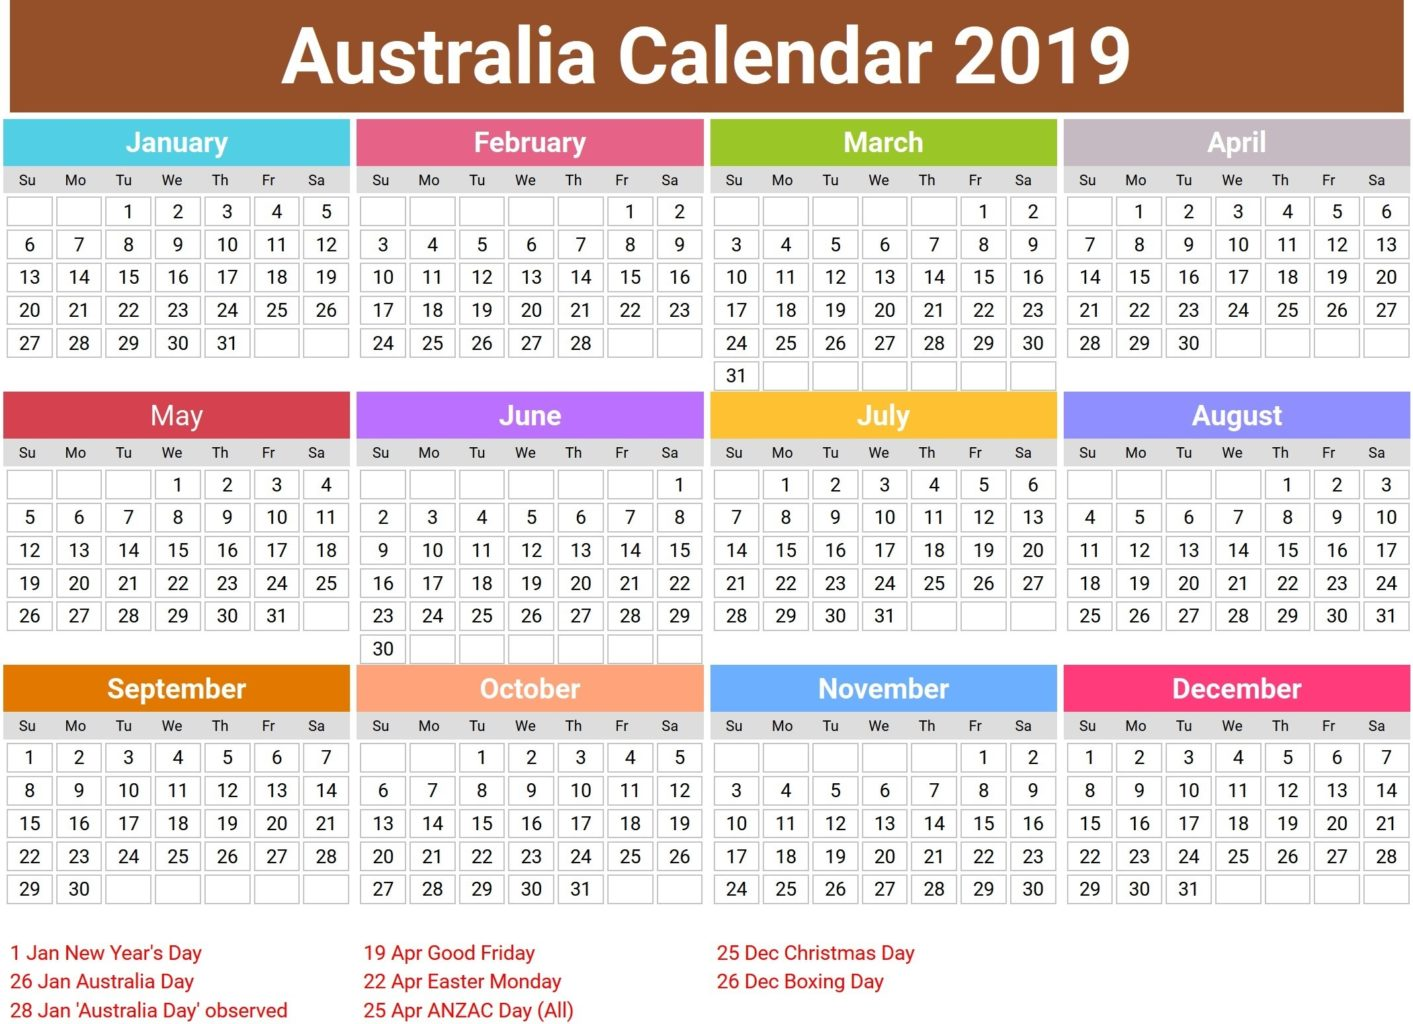 Australia 2019 Calendar With Holidays